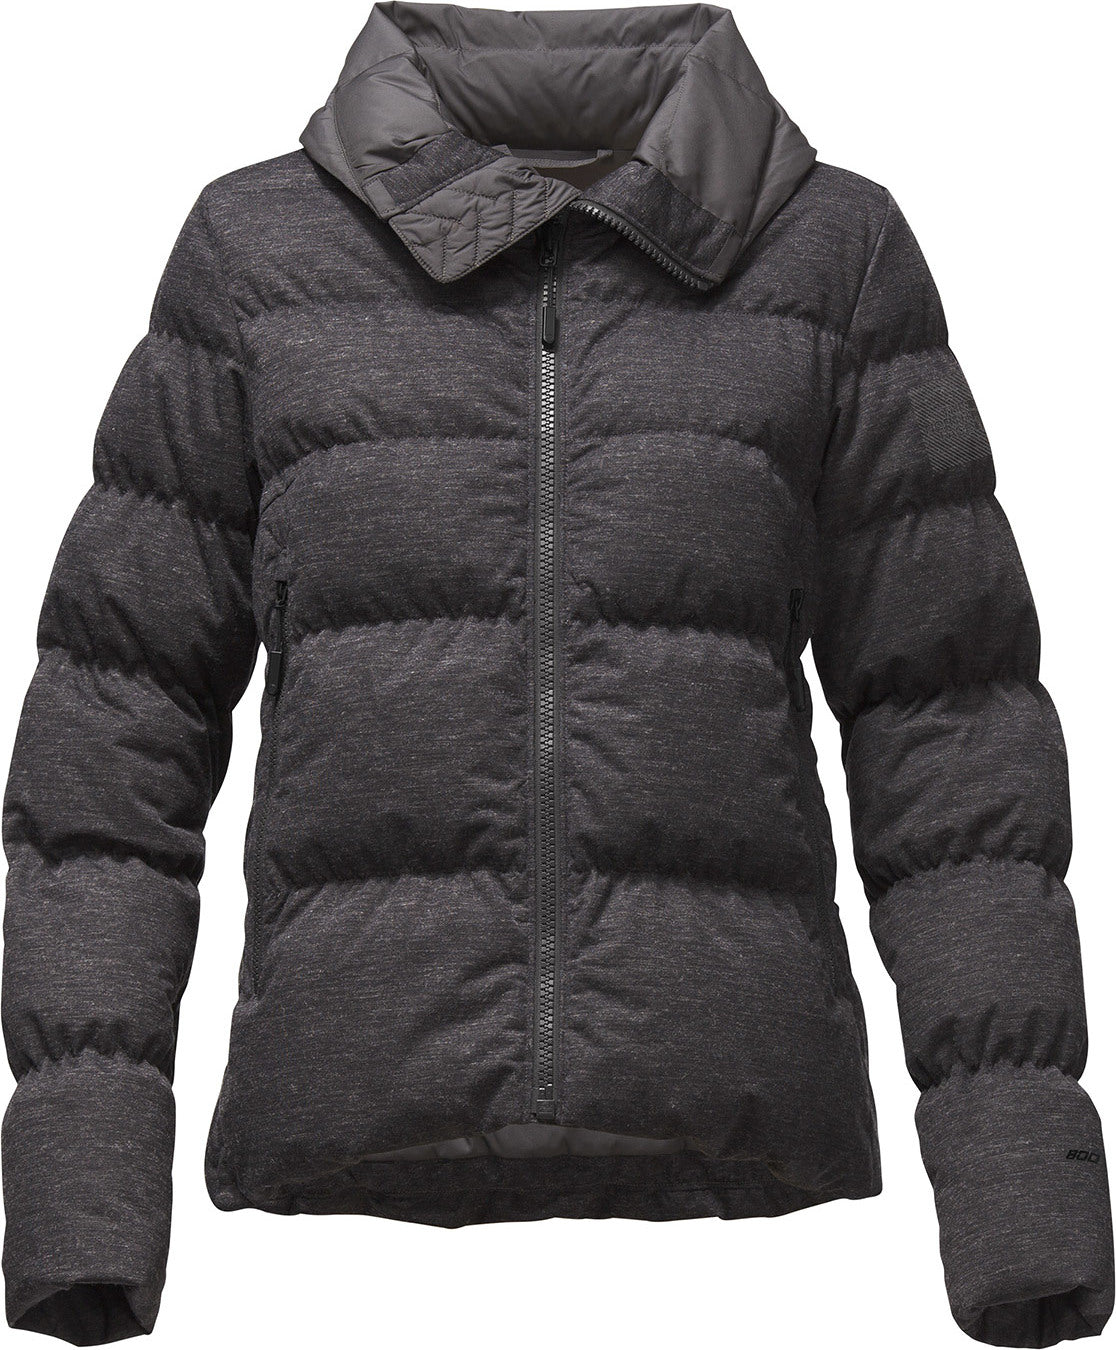 31a9851f217 The North Face Cryos Wool Down Jacket - Women's | The Last Hunt